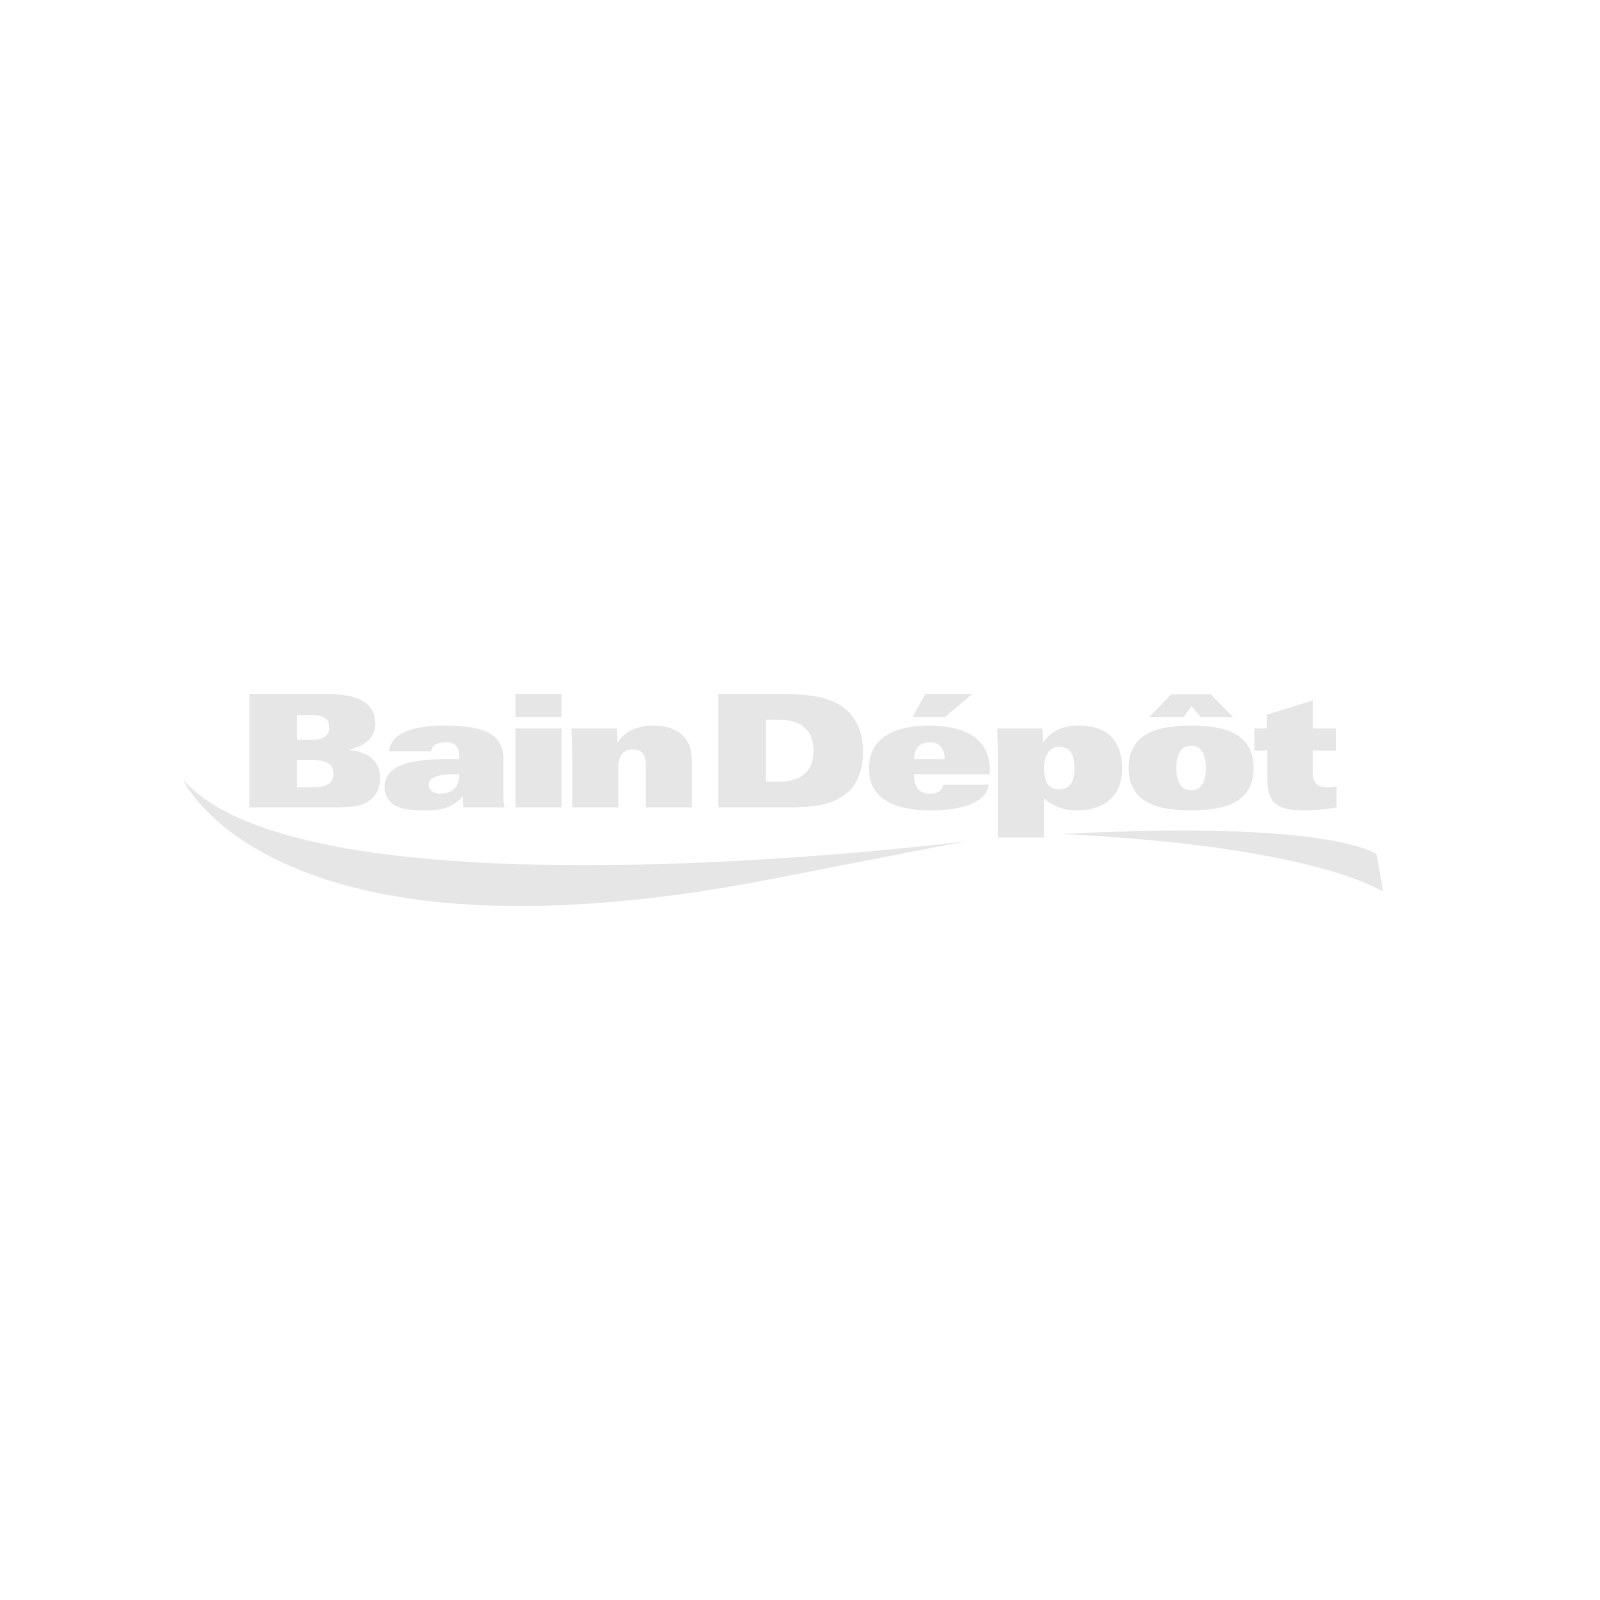 "36"" x 36"" Belly shower kit with door, base and white wall tiles"